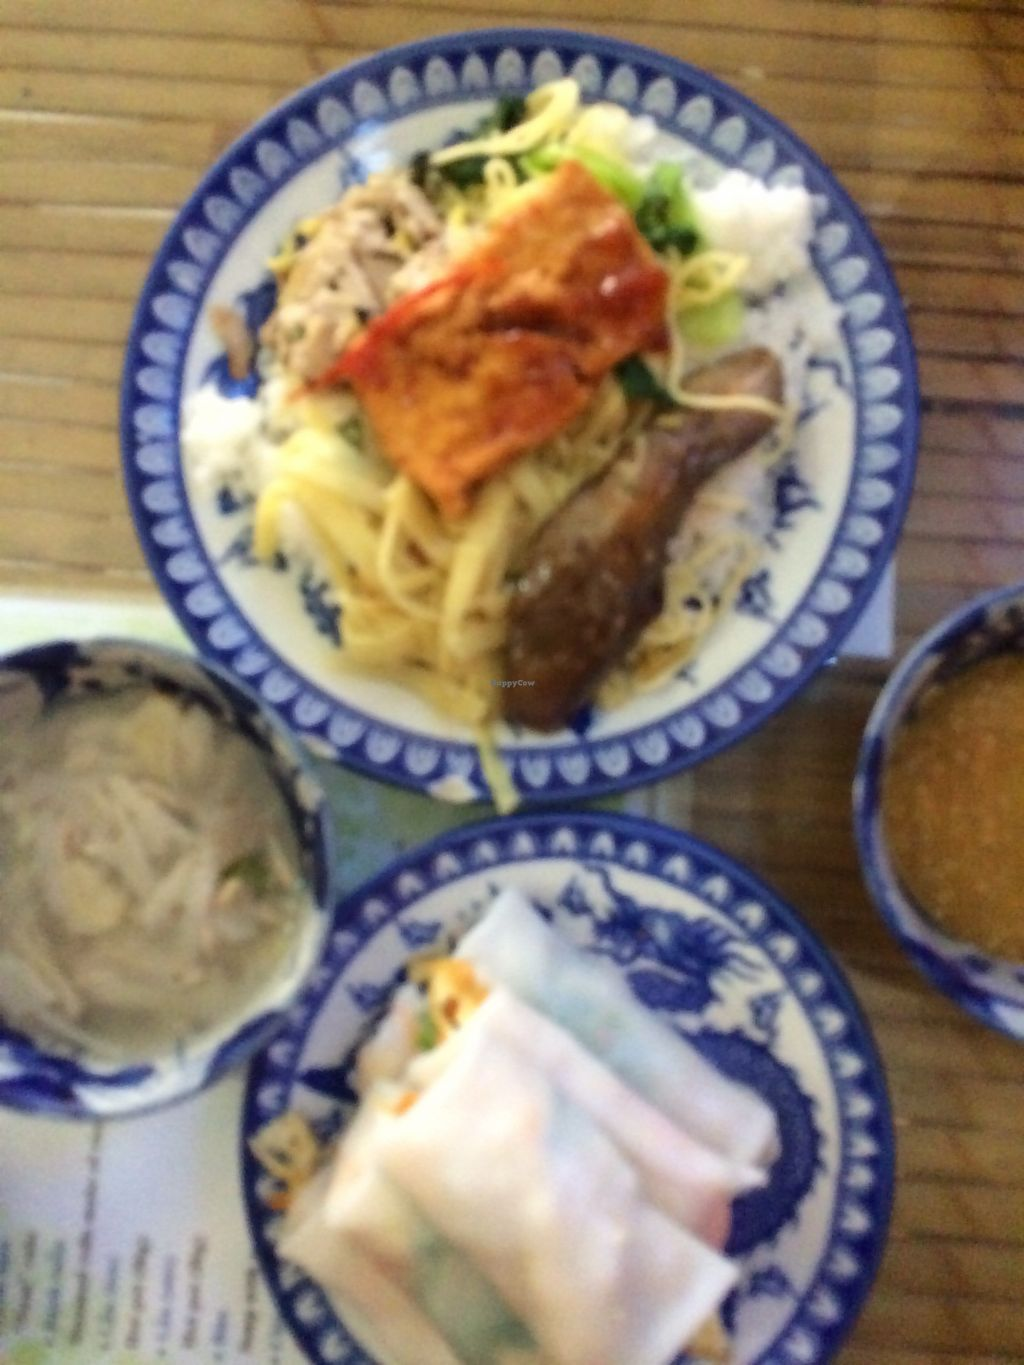 """Photo of Thanh Lieu  by <a href=""""/members/profile/LaurenceMontreuil"""">LaurenceMontreuil</a> <br/>com and fresh spring rolls <br/> August 31, 2017  - <a href='/contact/abuse/image/28812/299319'>Report</a>"""